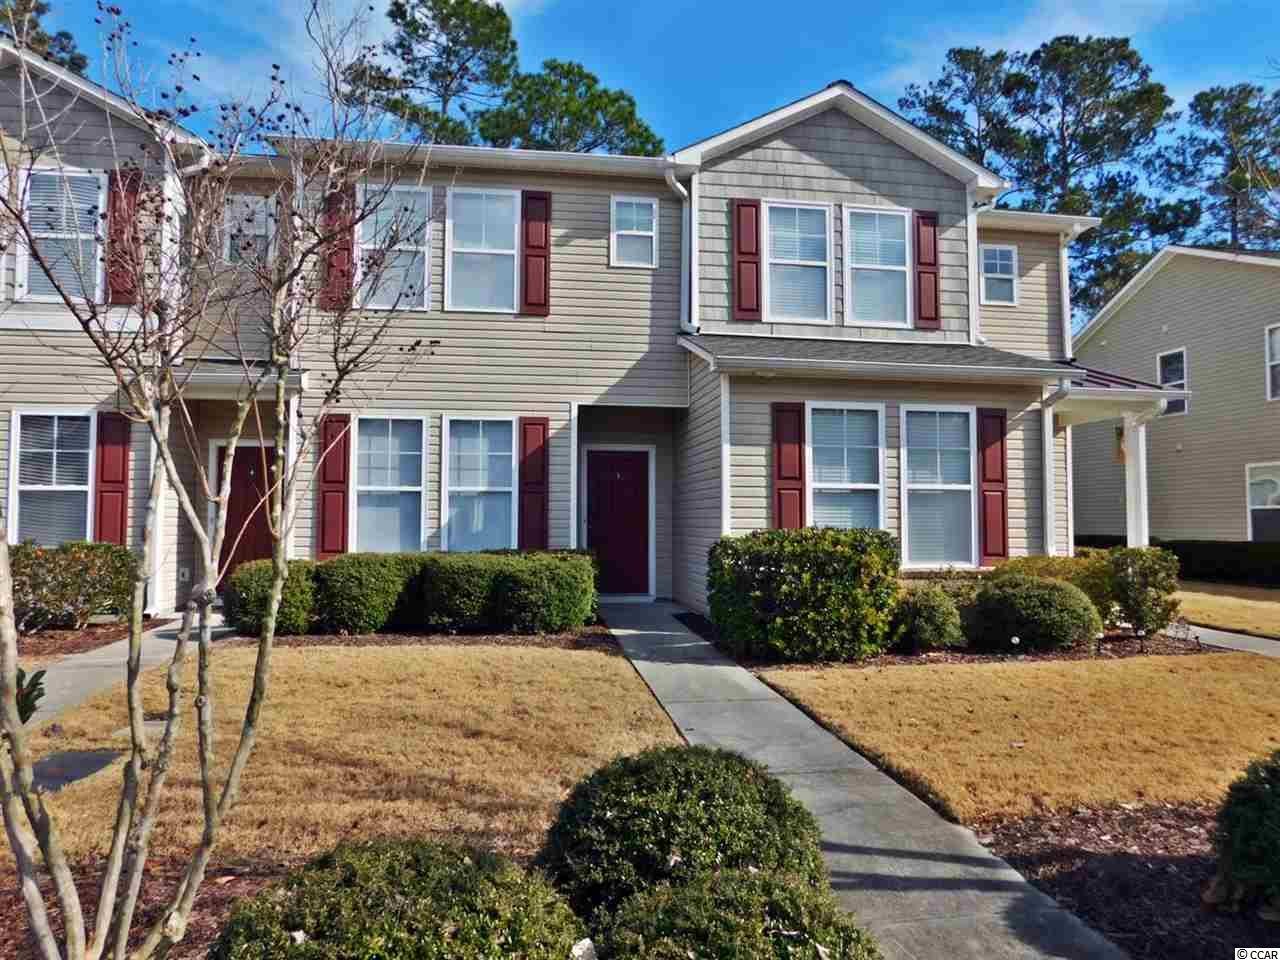 Townhouse MLS:1800711 WELLINGTON - SOCASTEE  108 Olde Towne Way Myrtle Beach SC